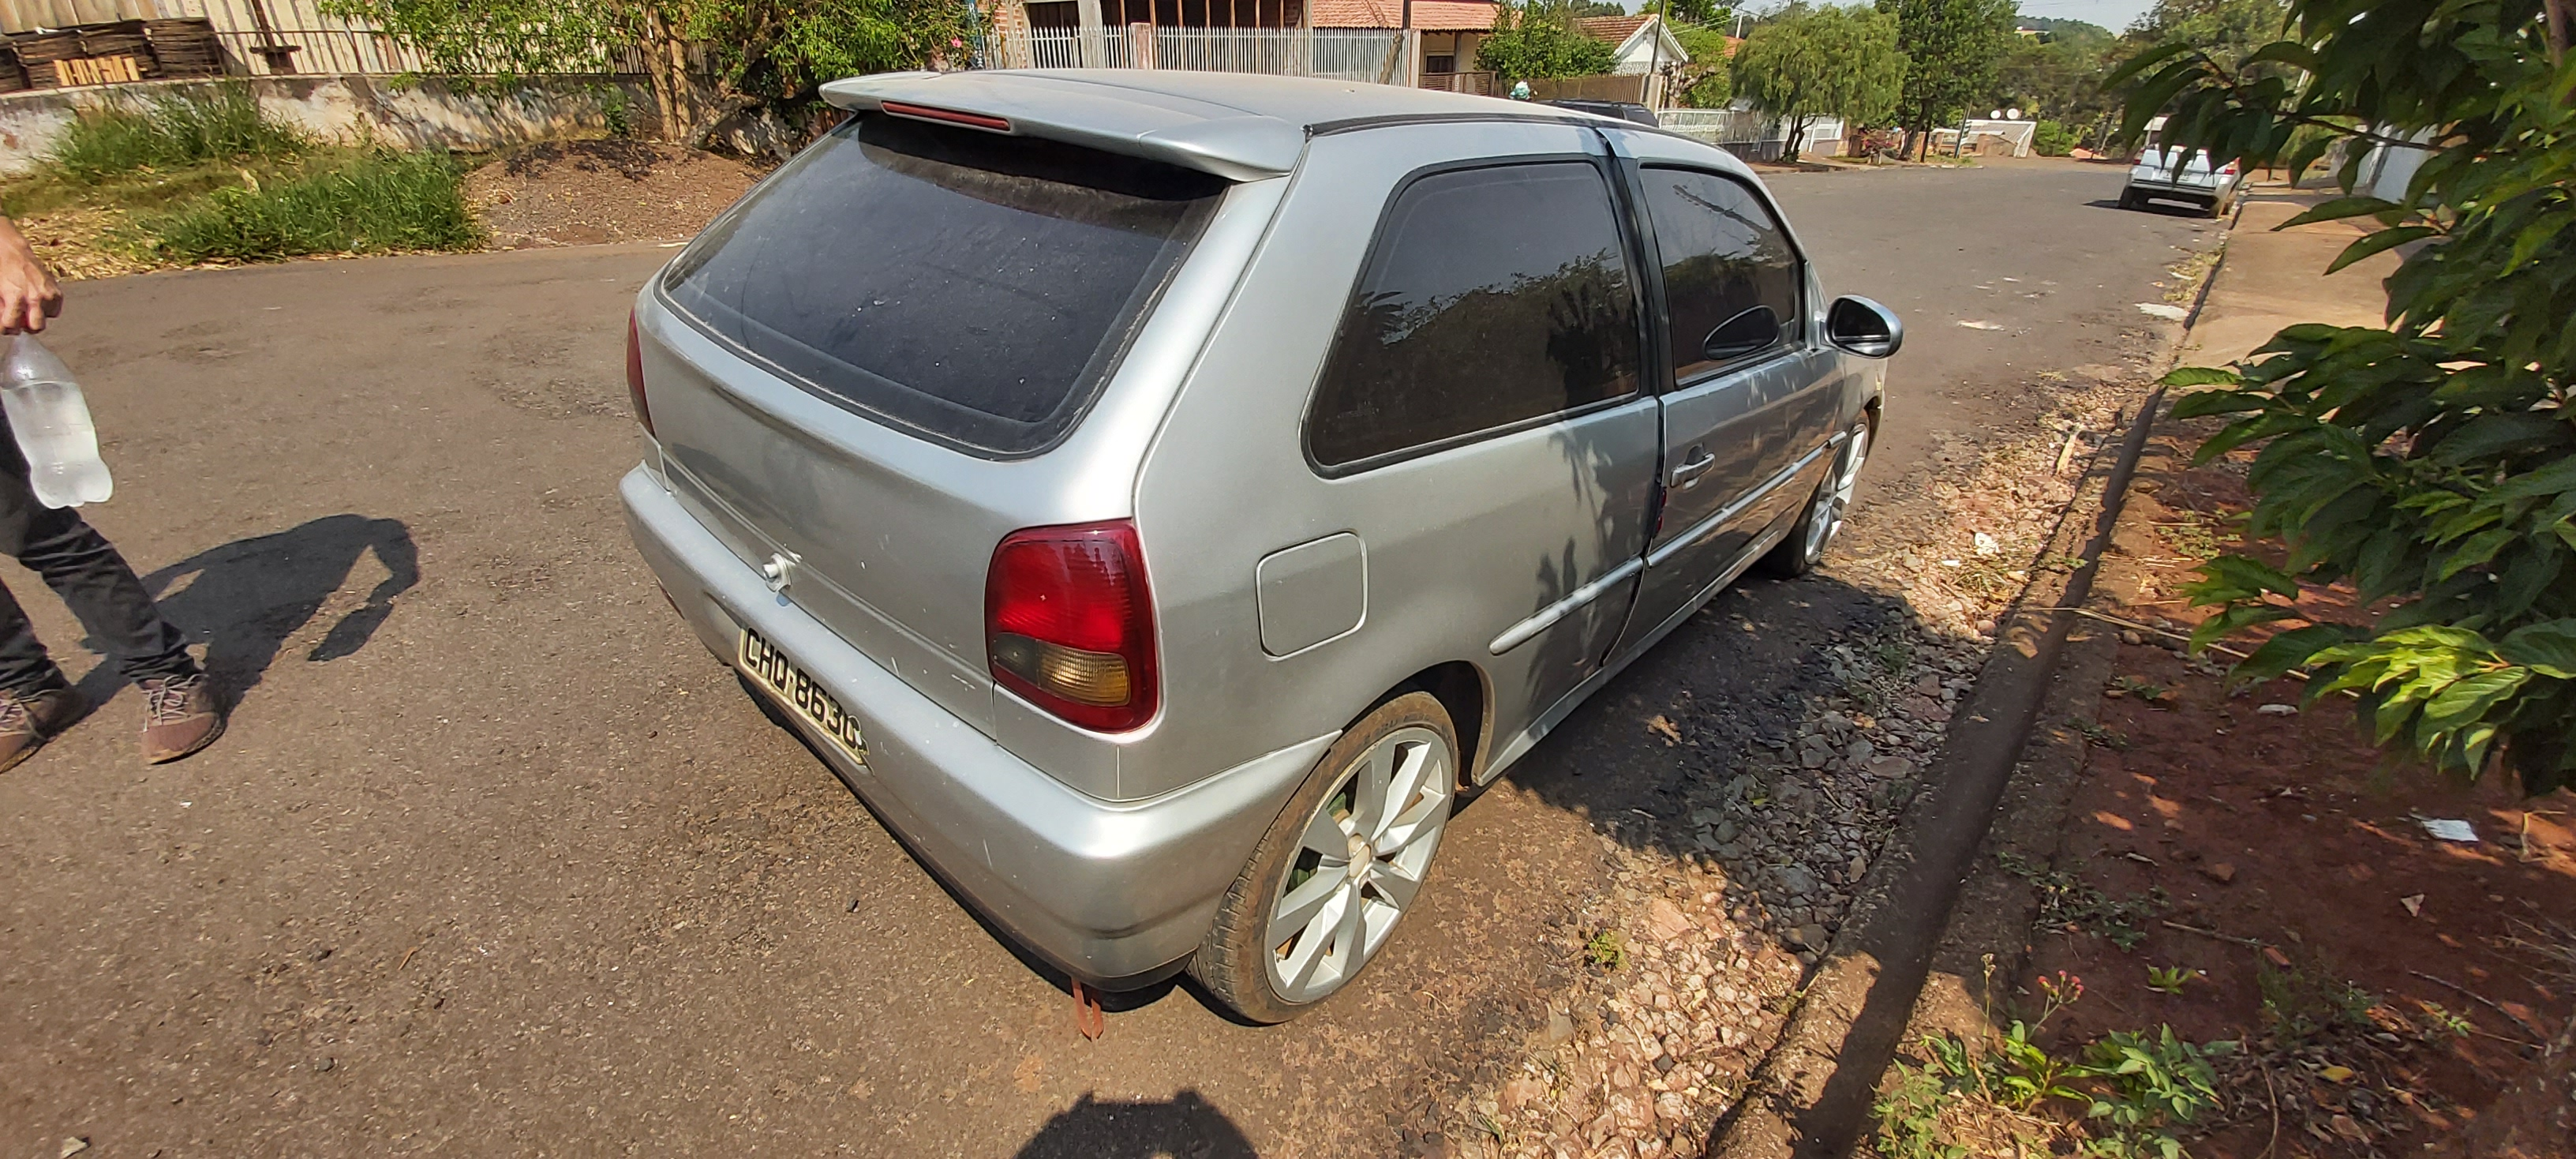 LOTE 48240